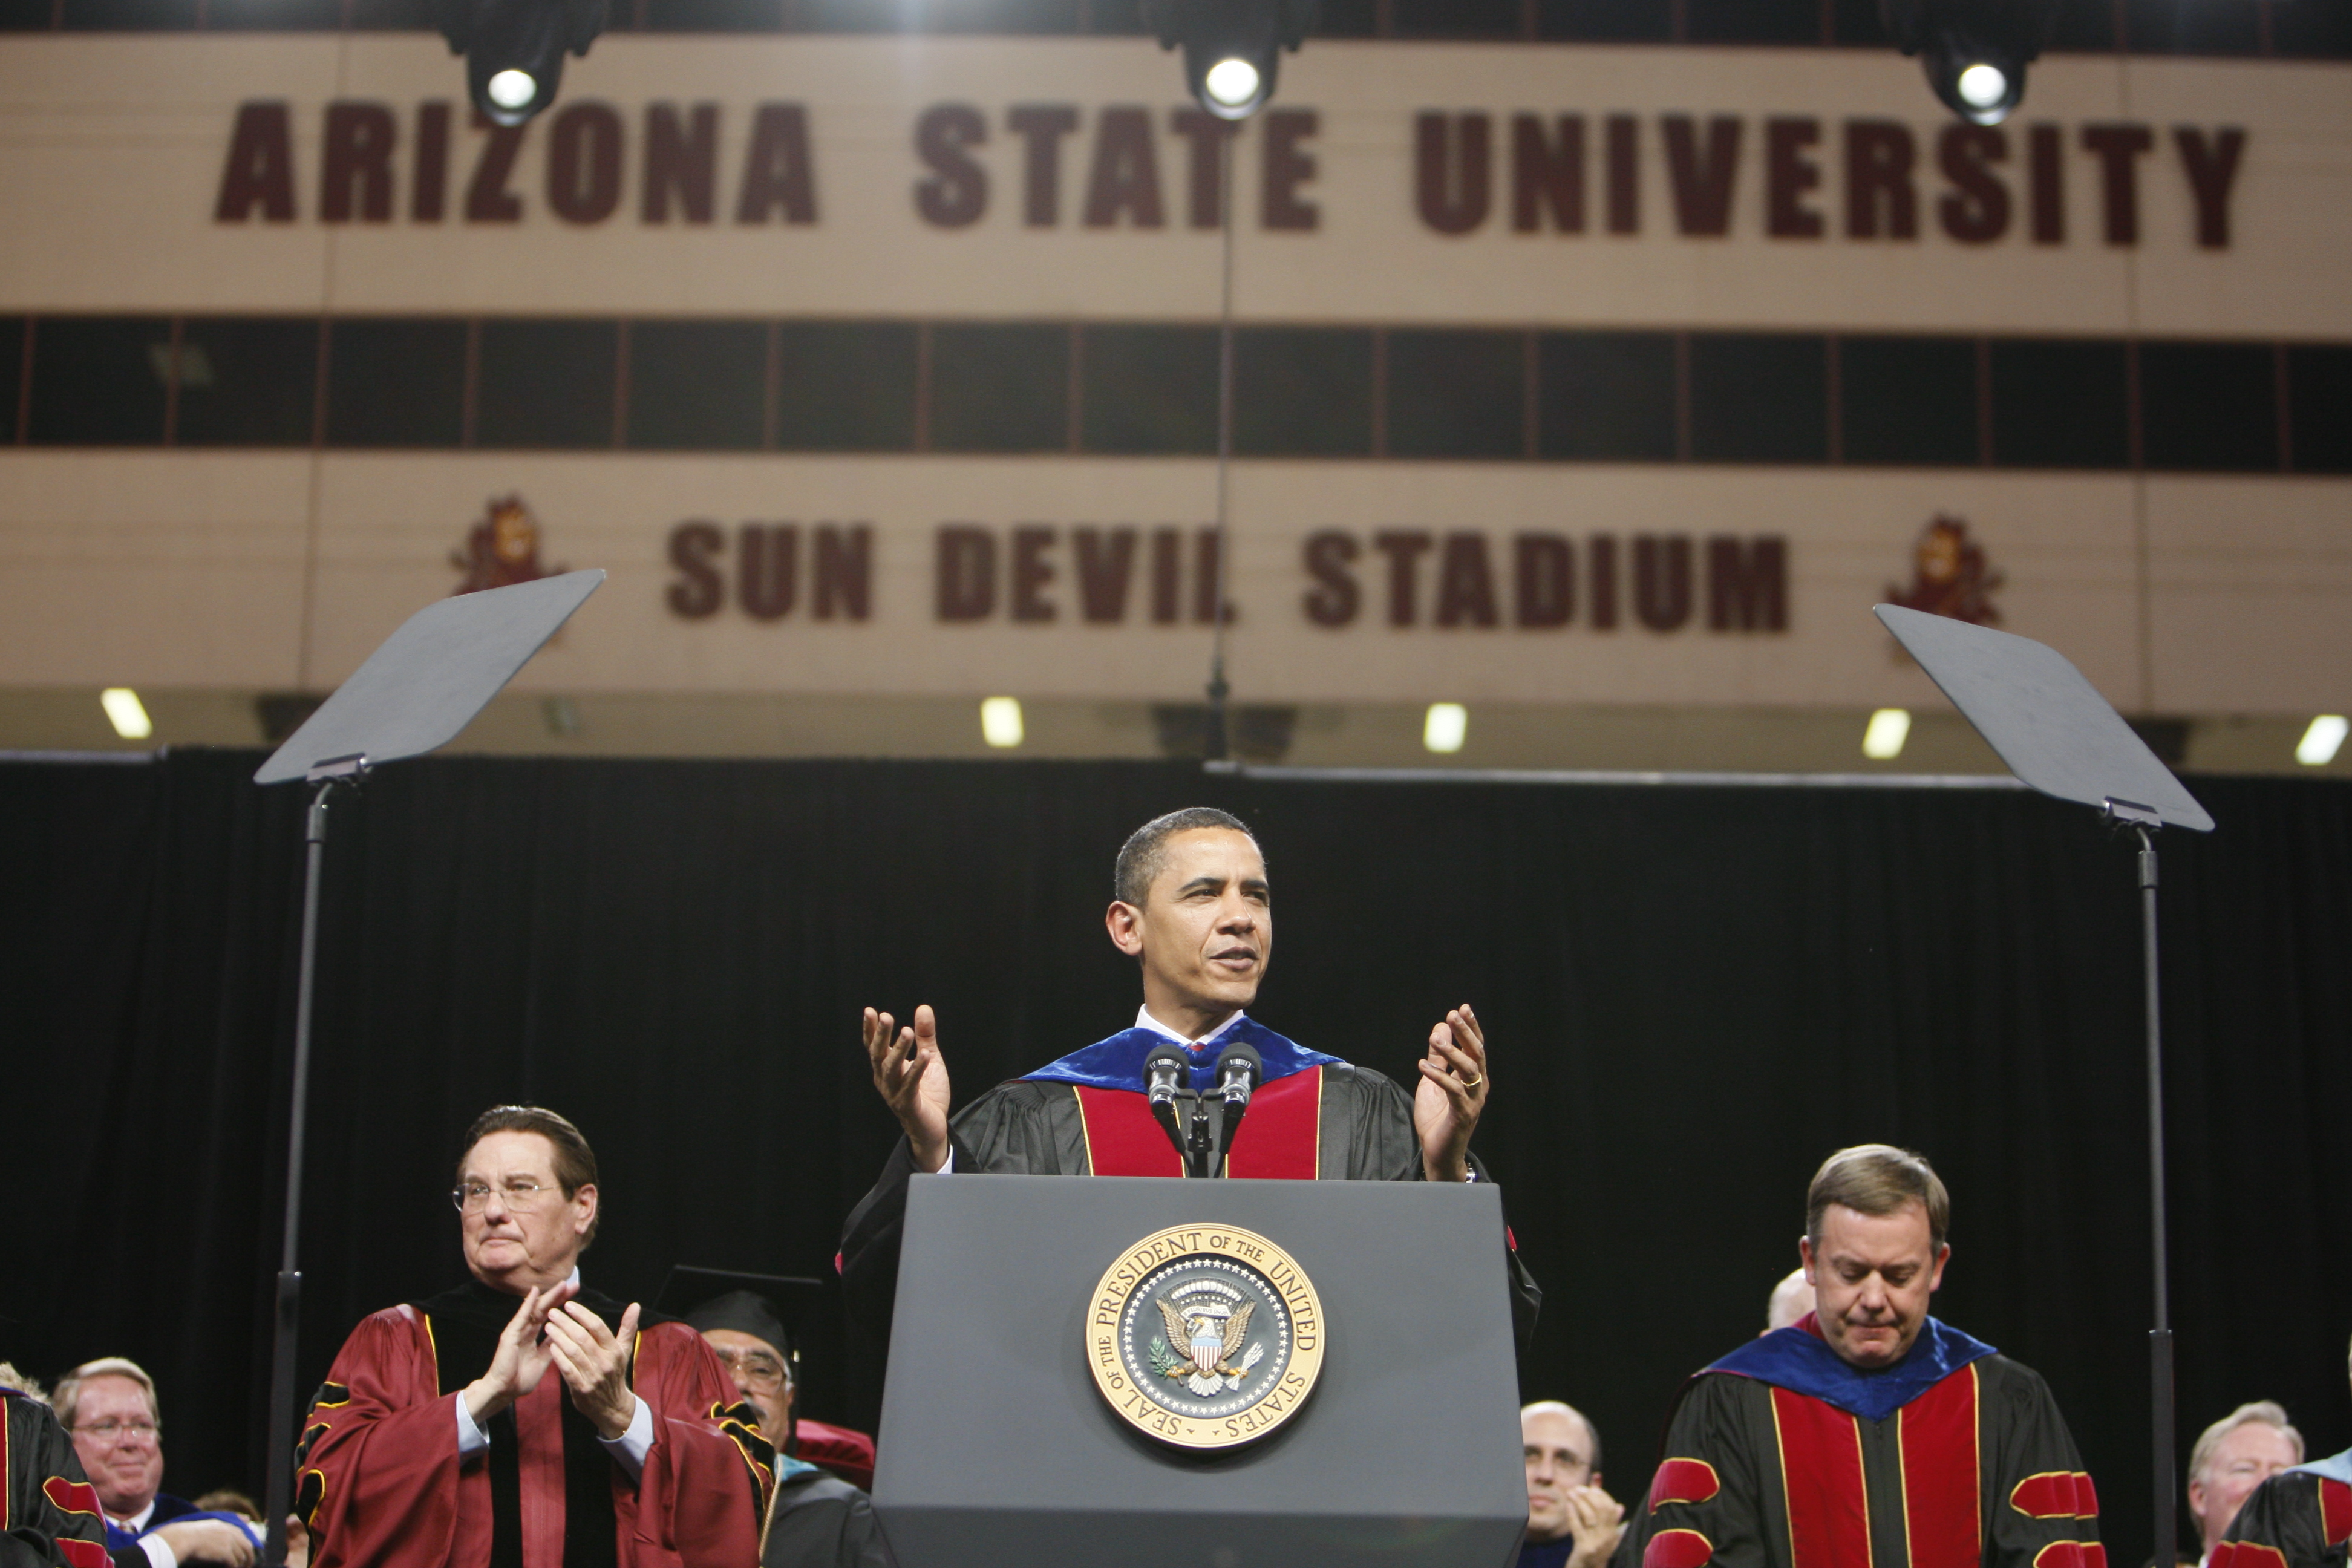 President Barack Obama speaks at the Arizona State University commencement ceremony at Sun Devil Stadium in Tempe, Ariz., Wednesday, May 13, 2009. (AP Photo/Charles Dharapak)